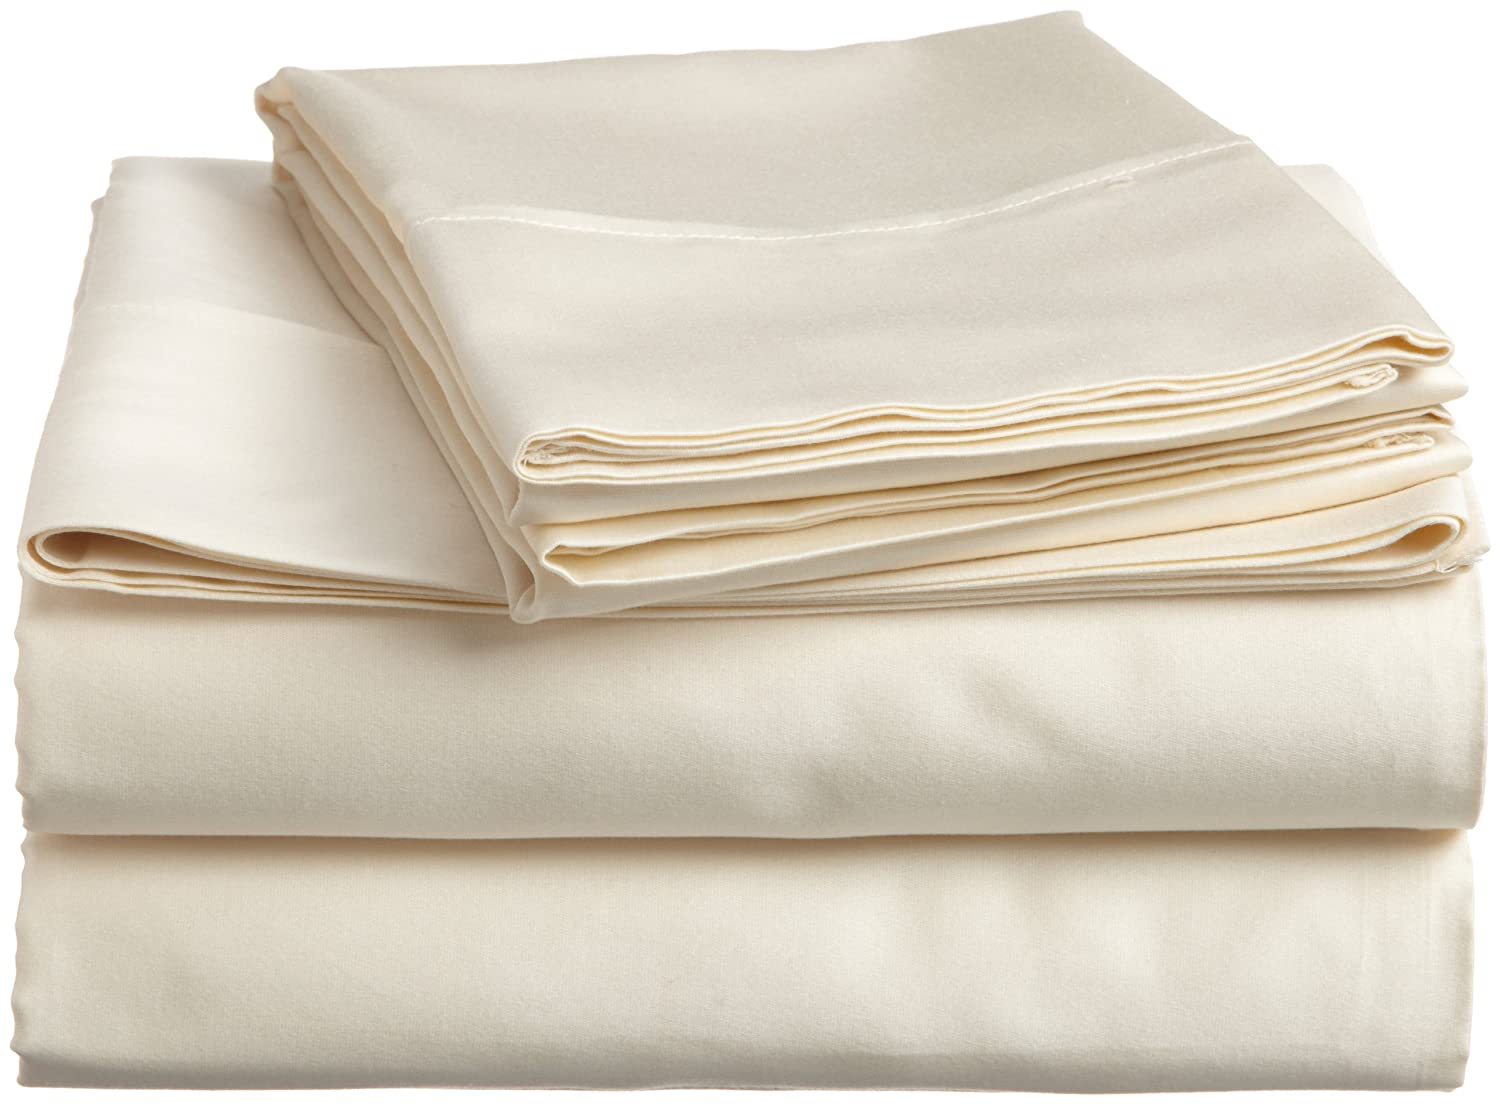 Ivory California King Superior 100% Premium Combed Cotton, 4-Piece Sheet and Pillowcase Cover Set, Solid, Queen - White